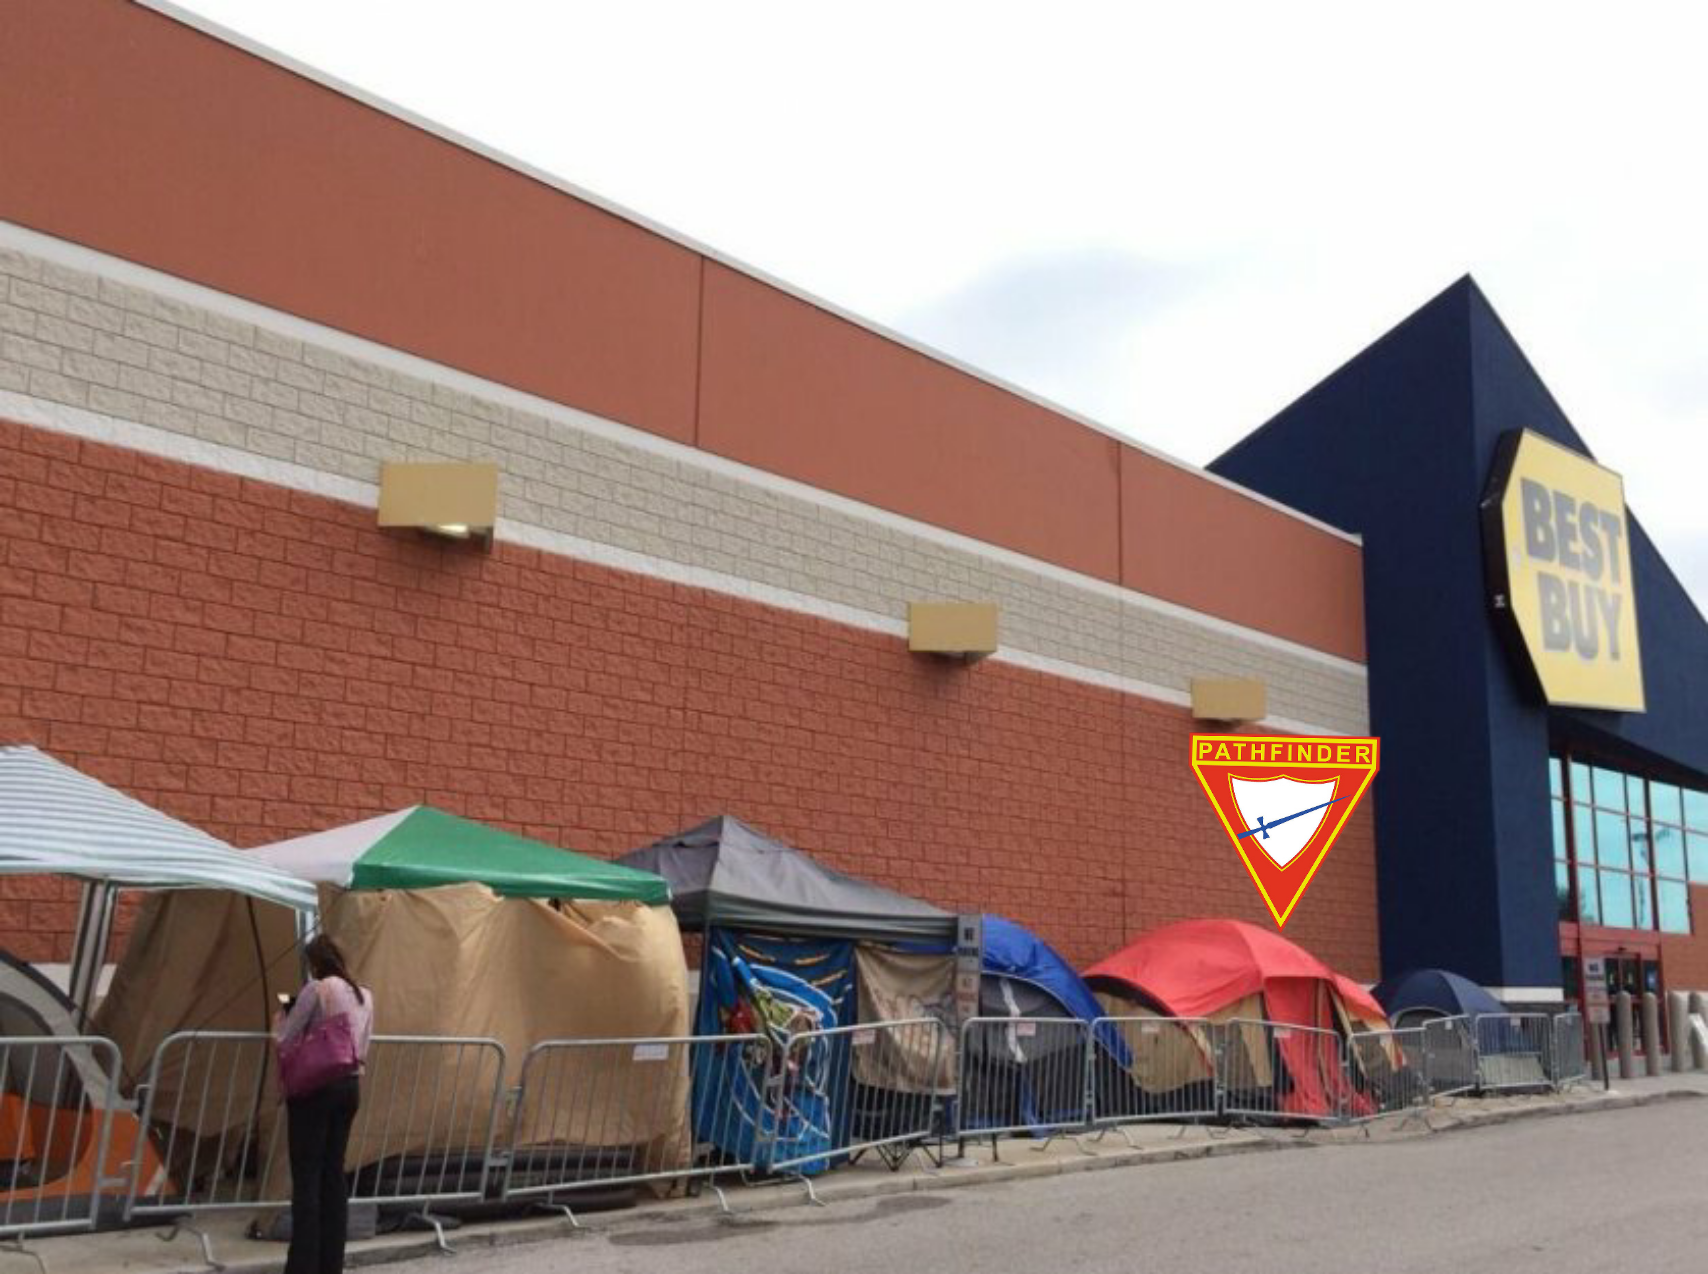 Pathfinders dominate Black Friday campouts across US